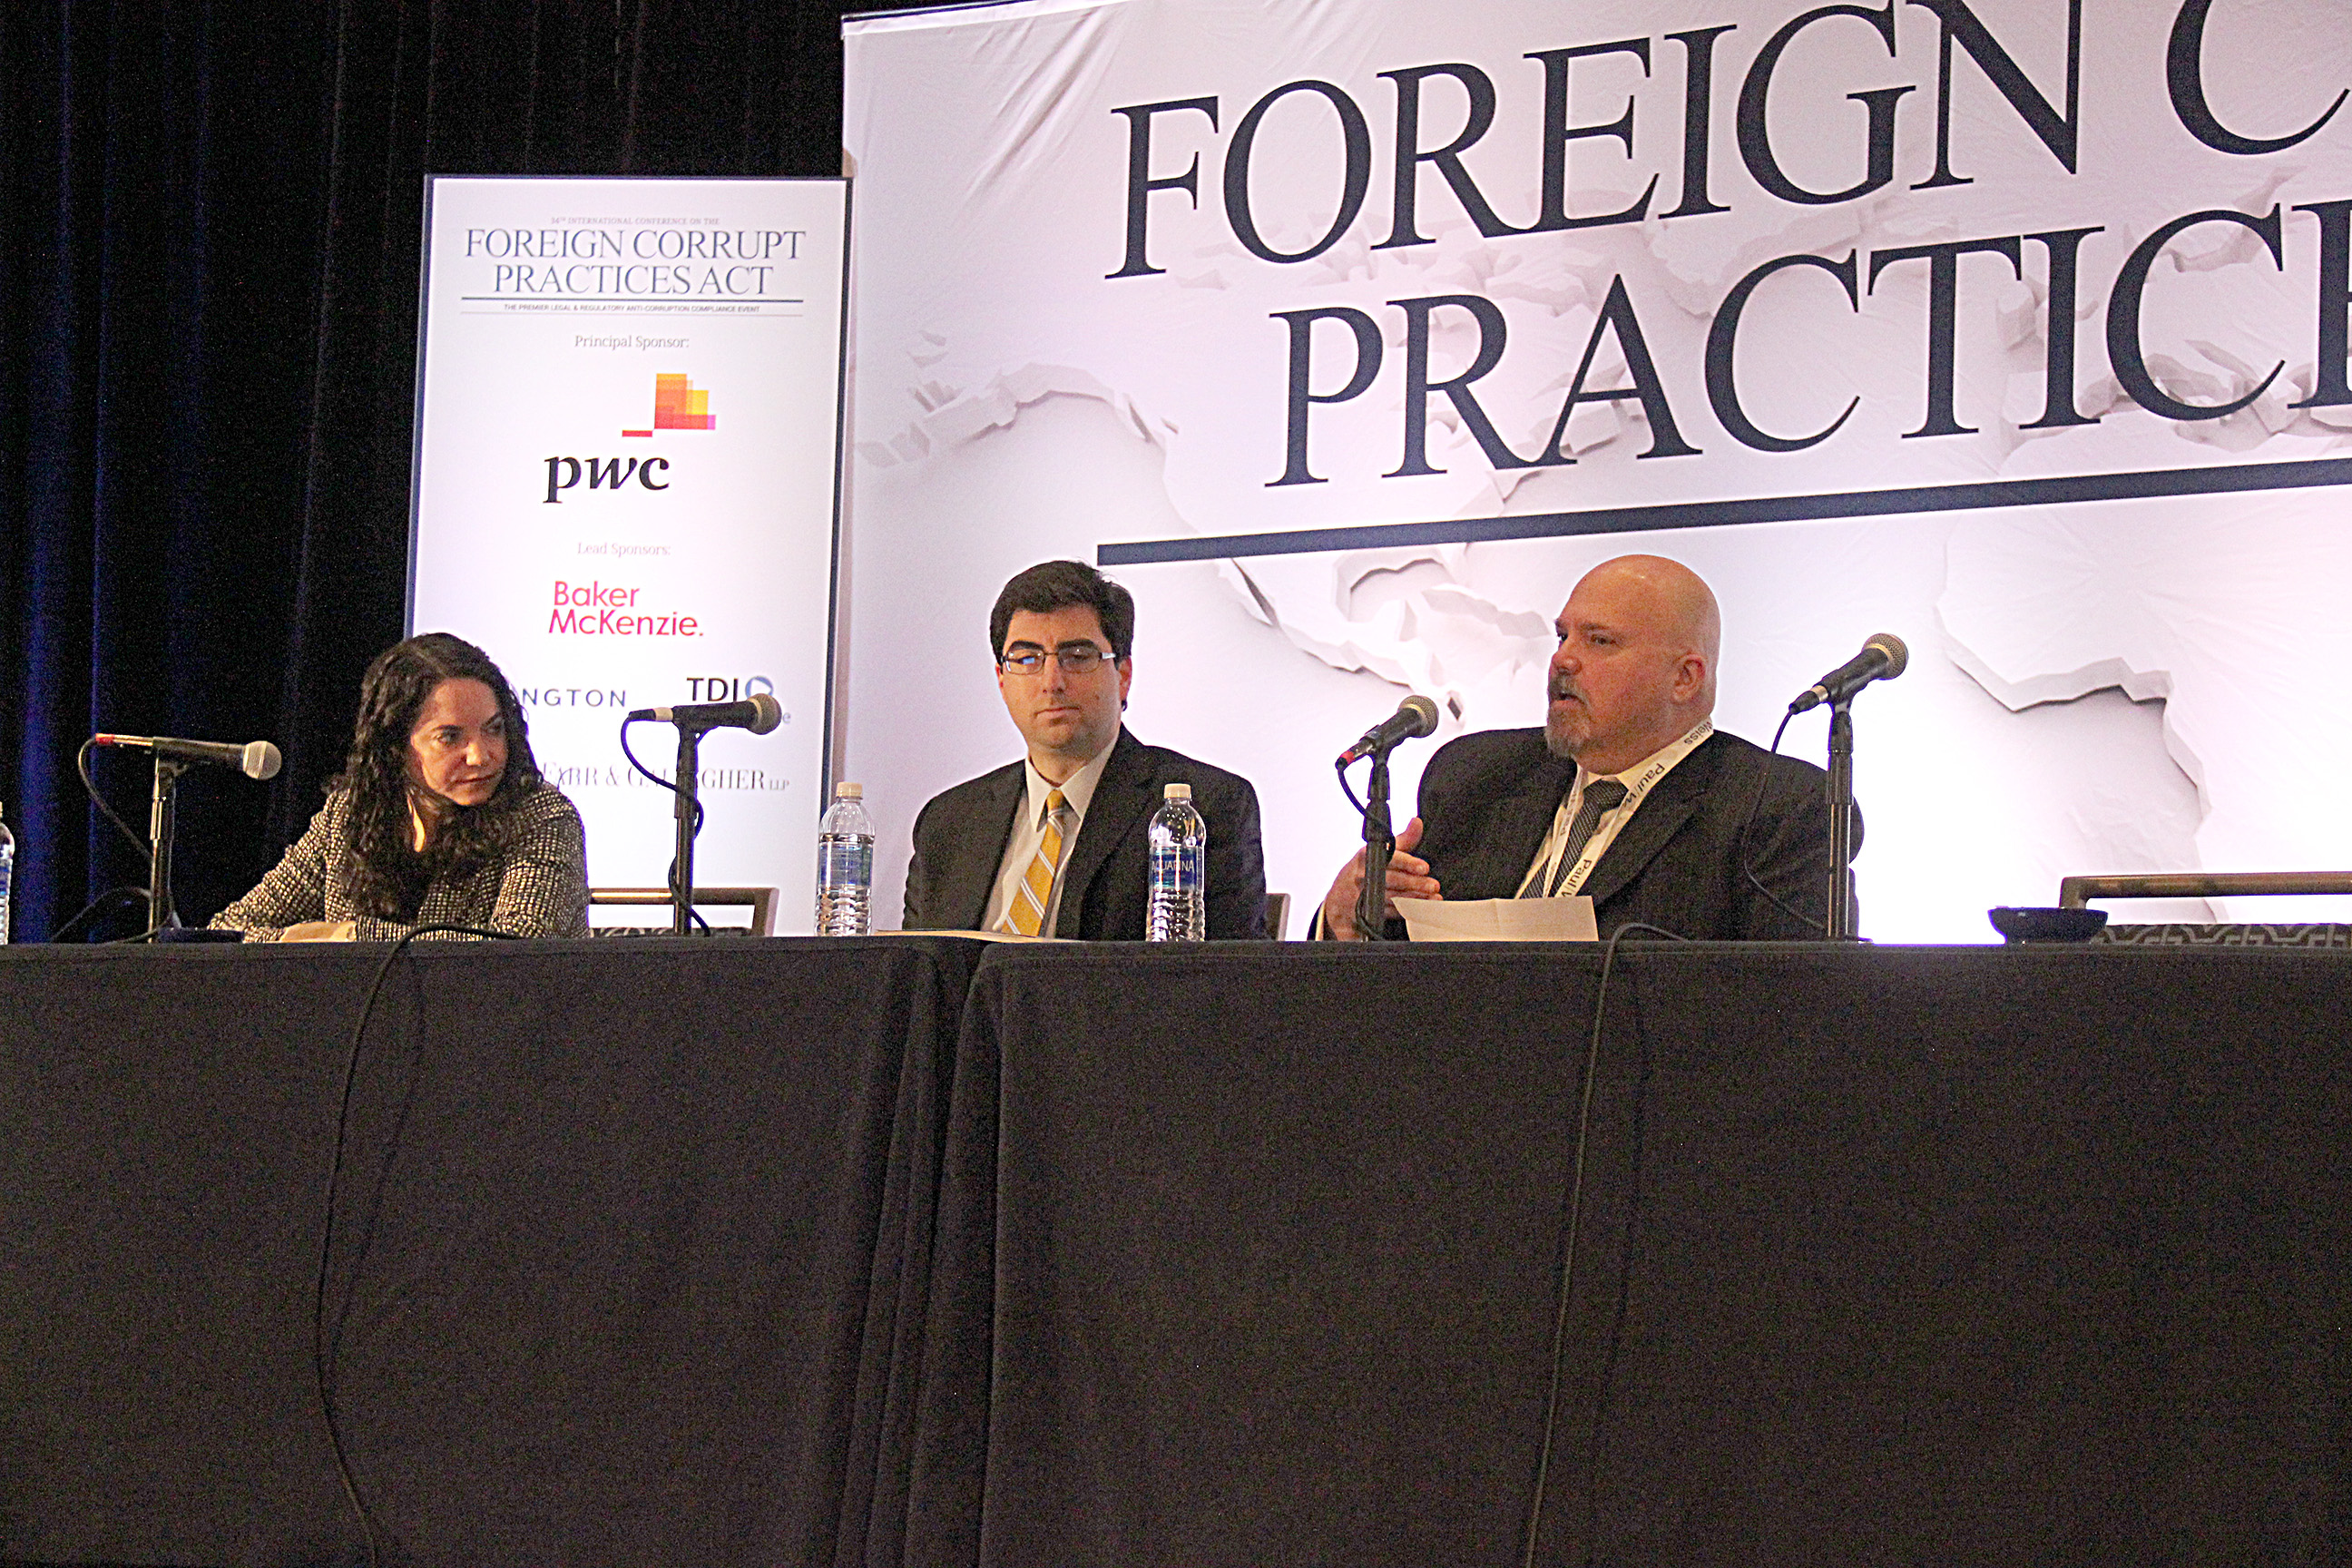 """foreign corrupt practices The foreign corrupt practices act (""""fcpa"""") generally prohibits the bribing of  foreign officials the fcpa also requires publicly traded companies to maintain."""